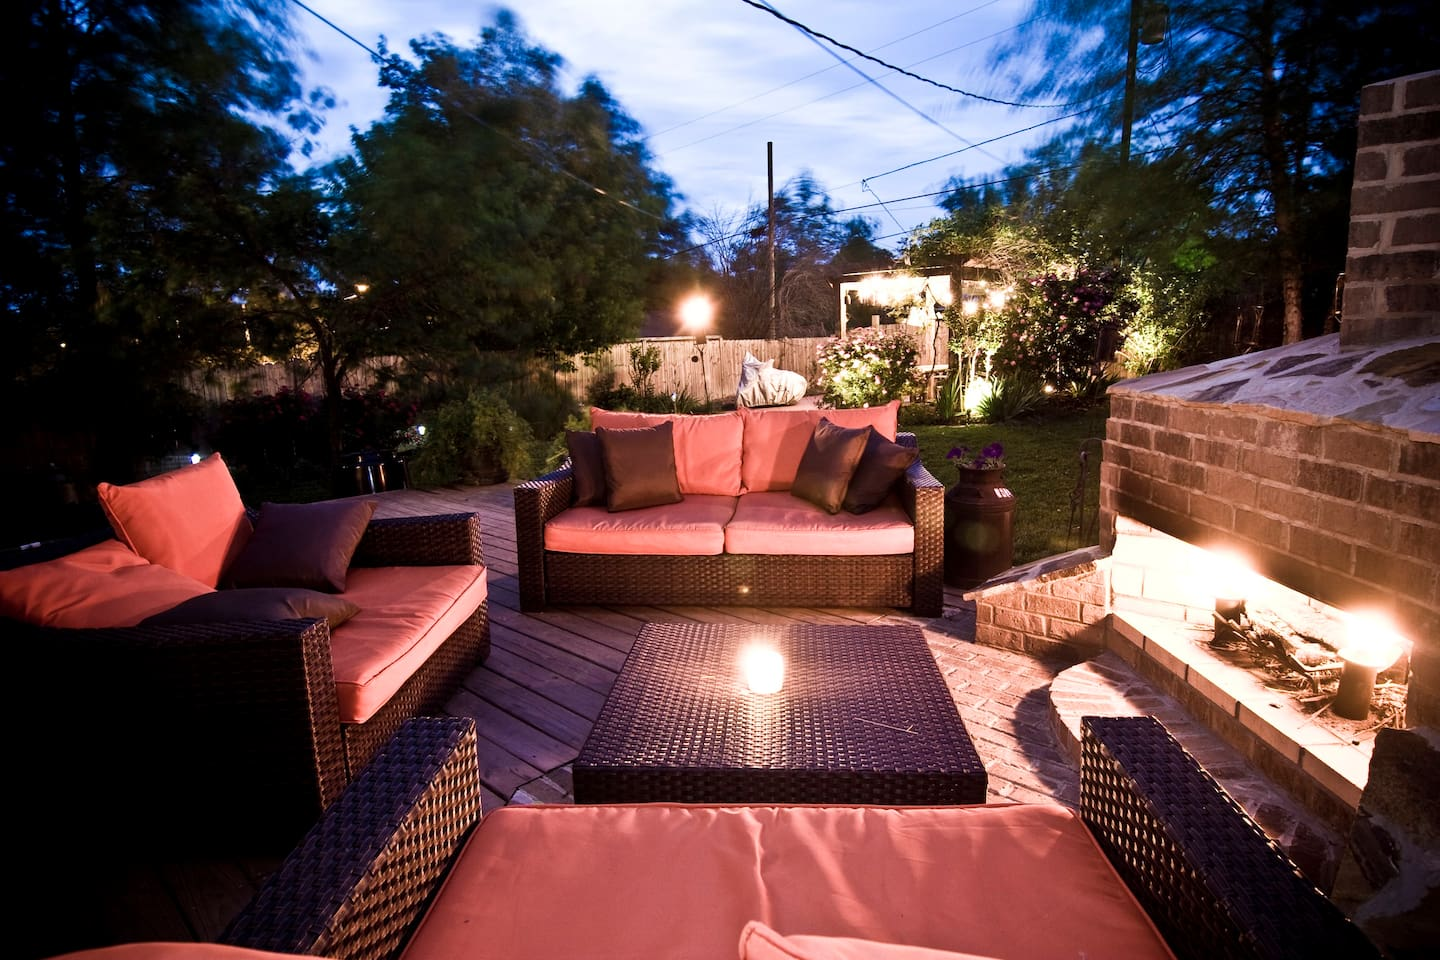 The back garden seating area and outside fireplace - STRP # 201517383